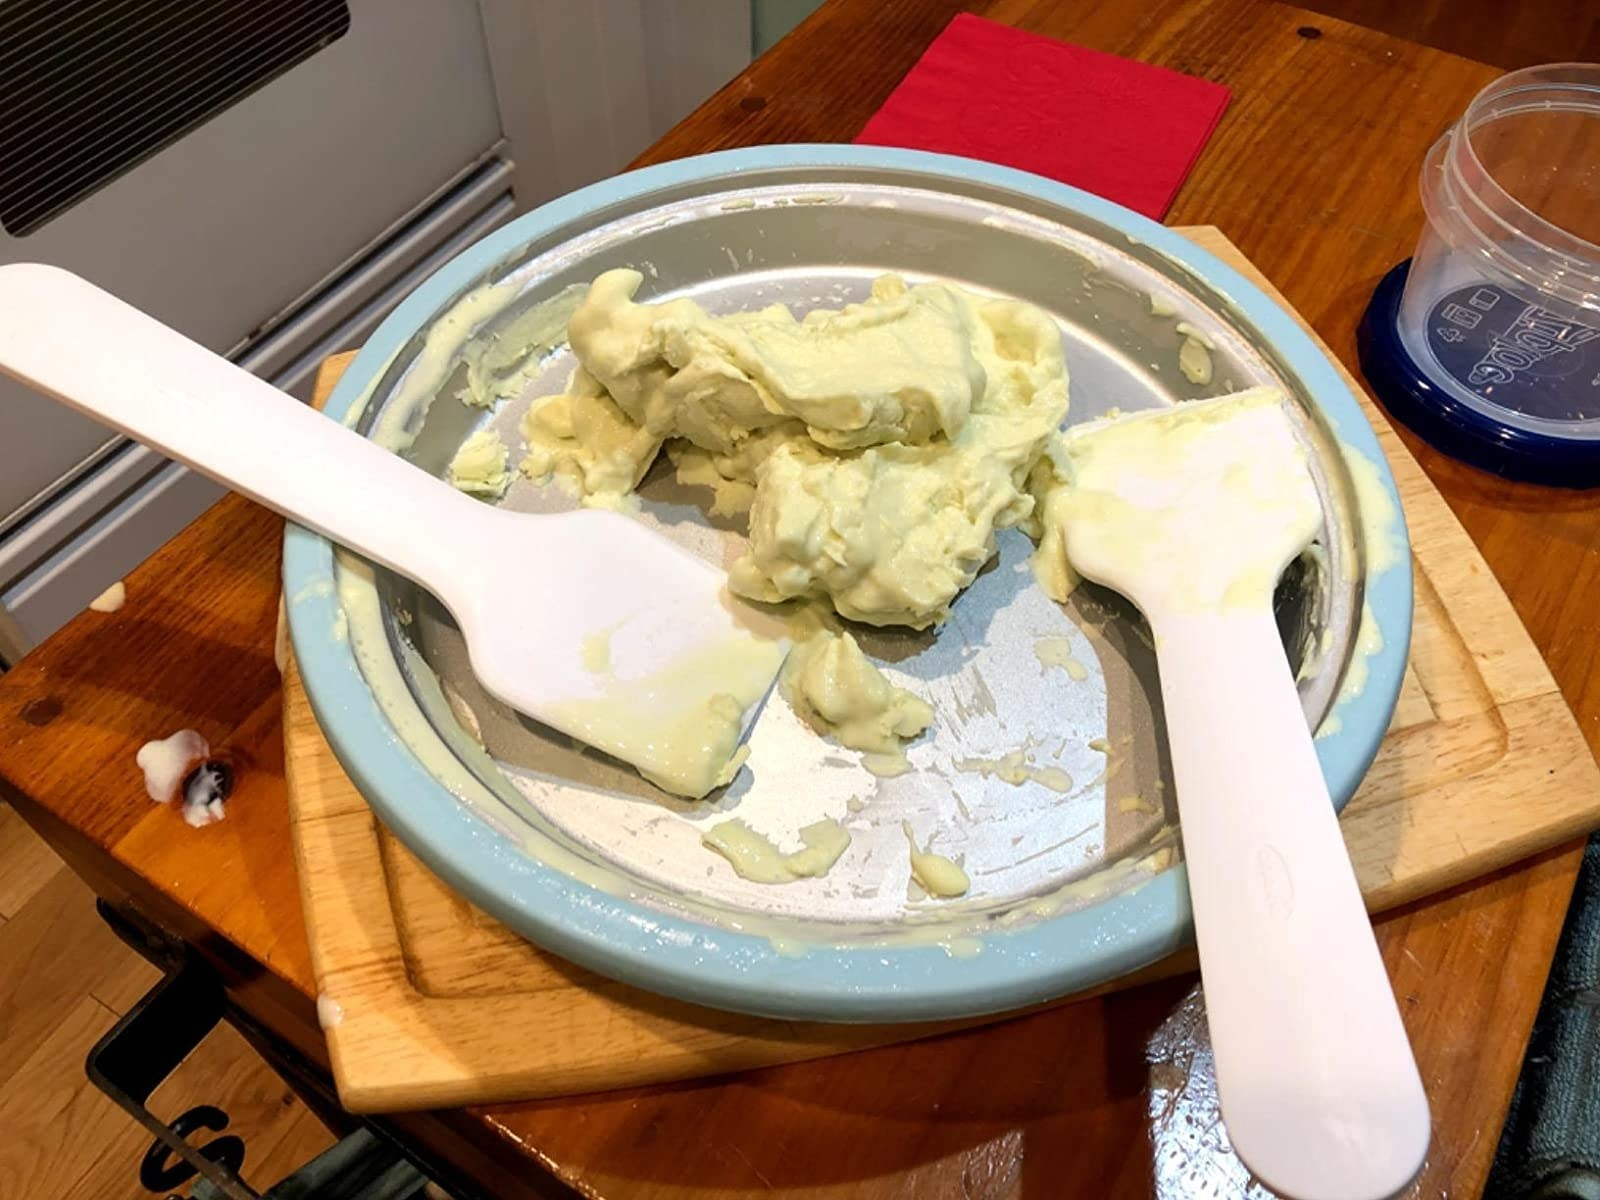 reviewer image of homemade ice cream scraped off of the chef'n sweet ice cream maker